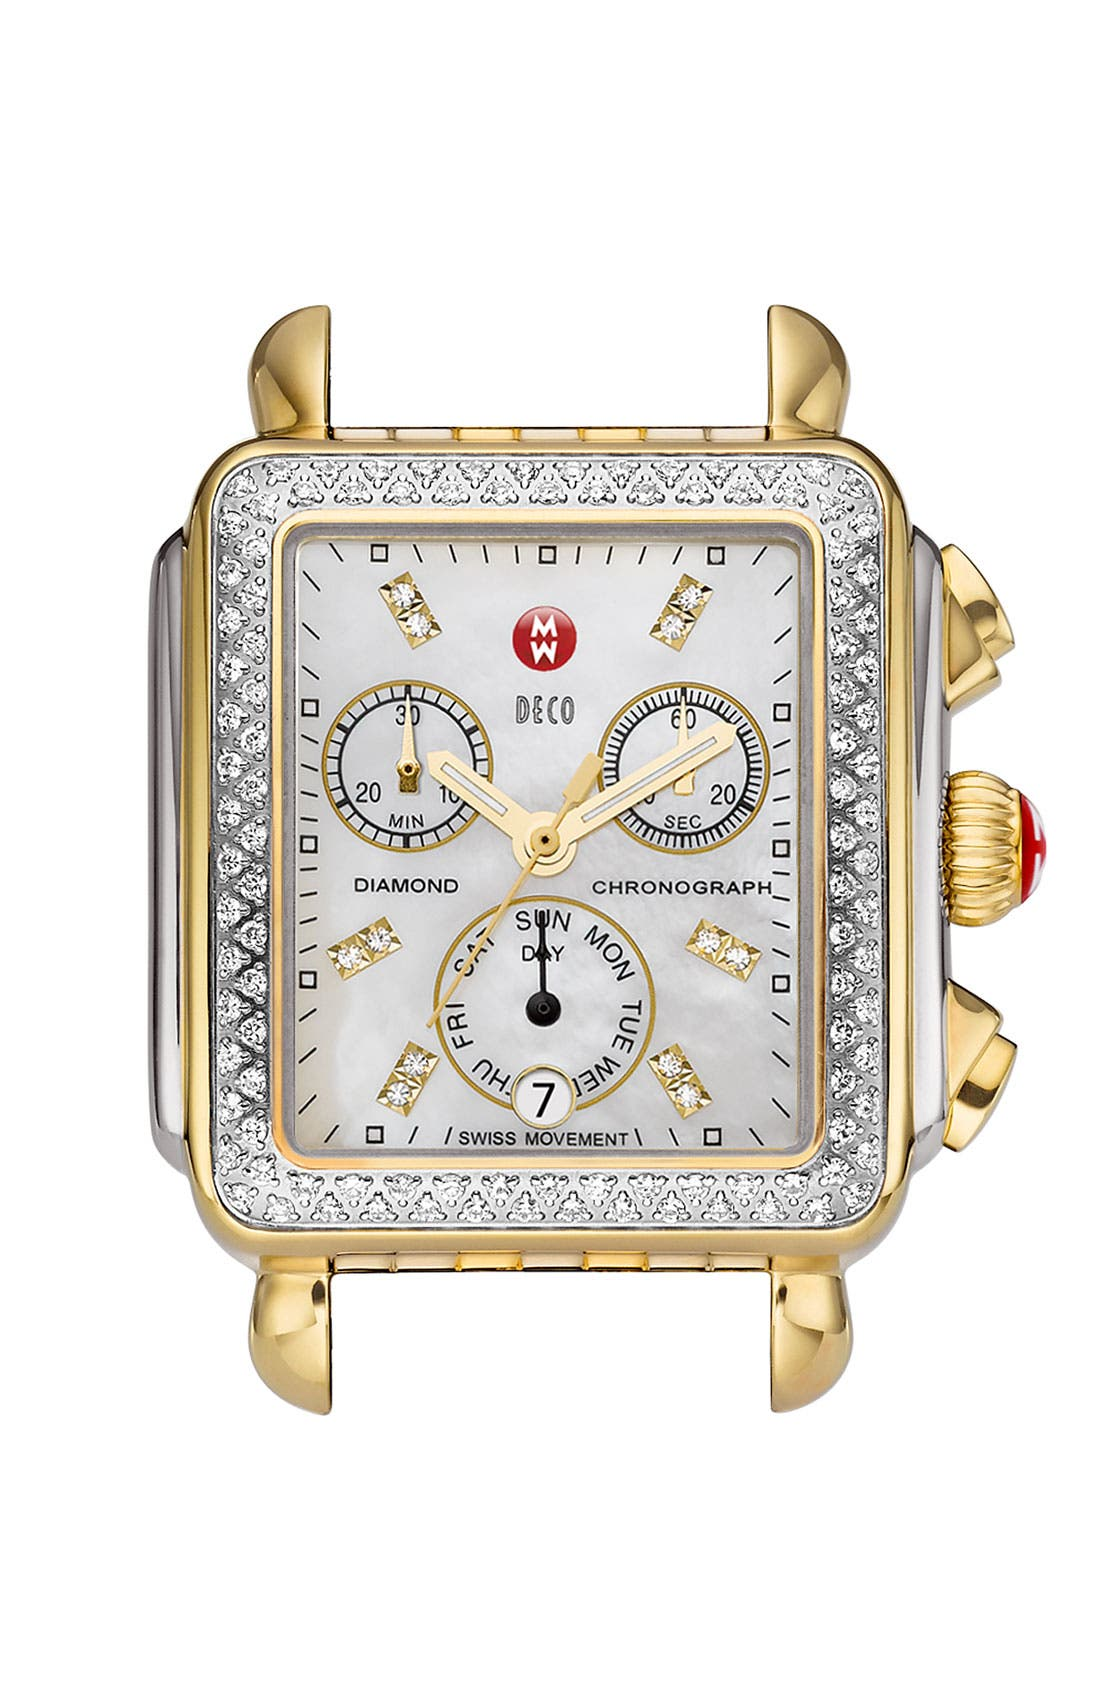 Main Image - MICHELE 'Deco Diamond' Two-Tone Watch Case & 18mm Patent Leather Strap